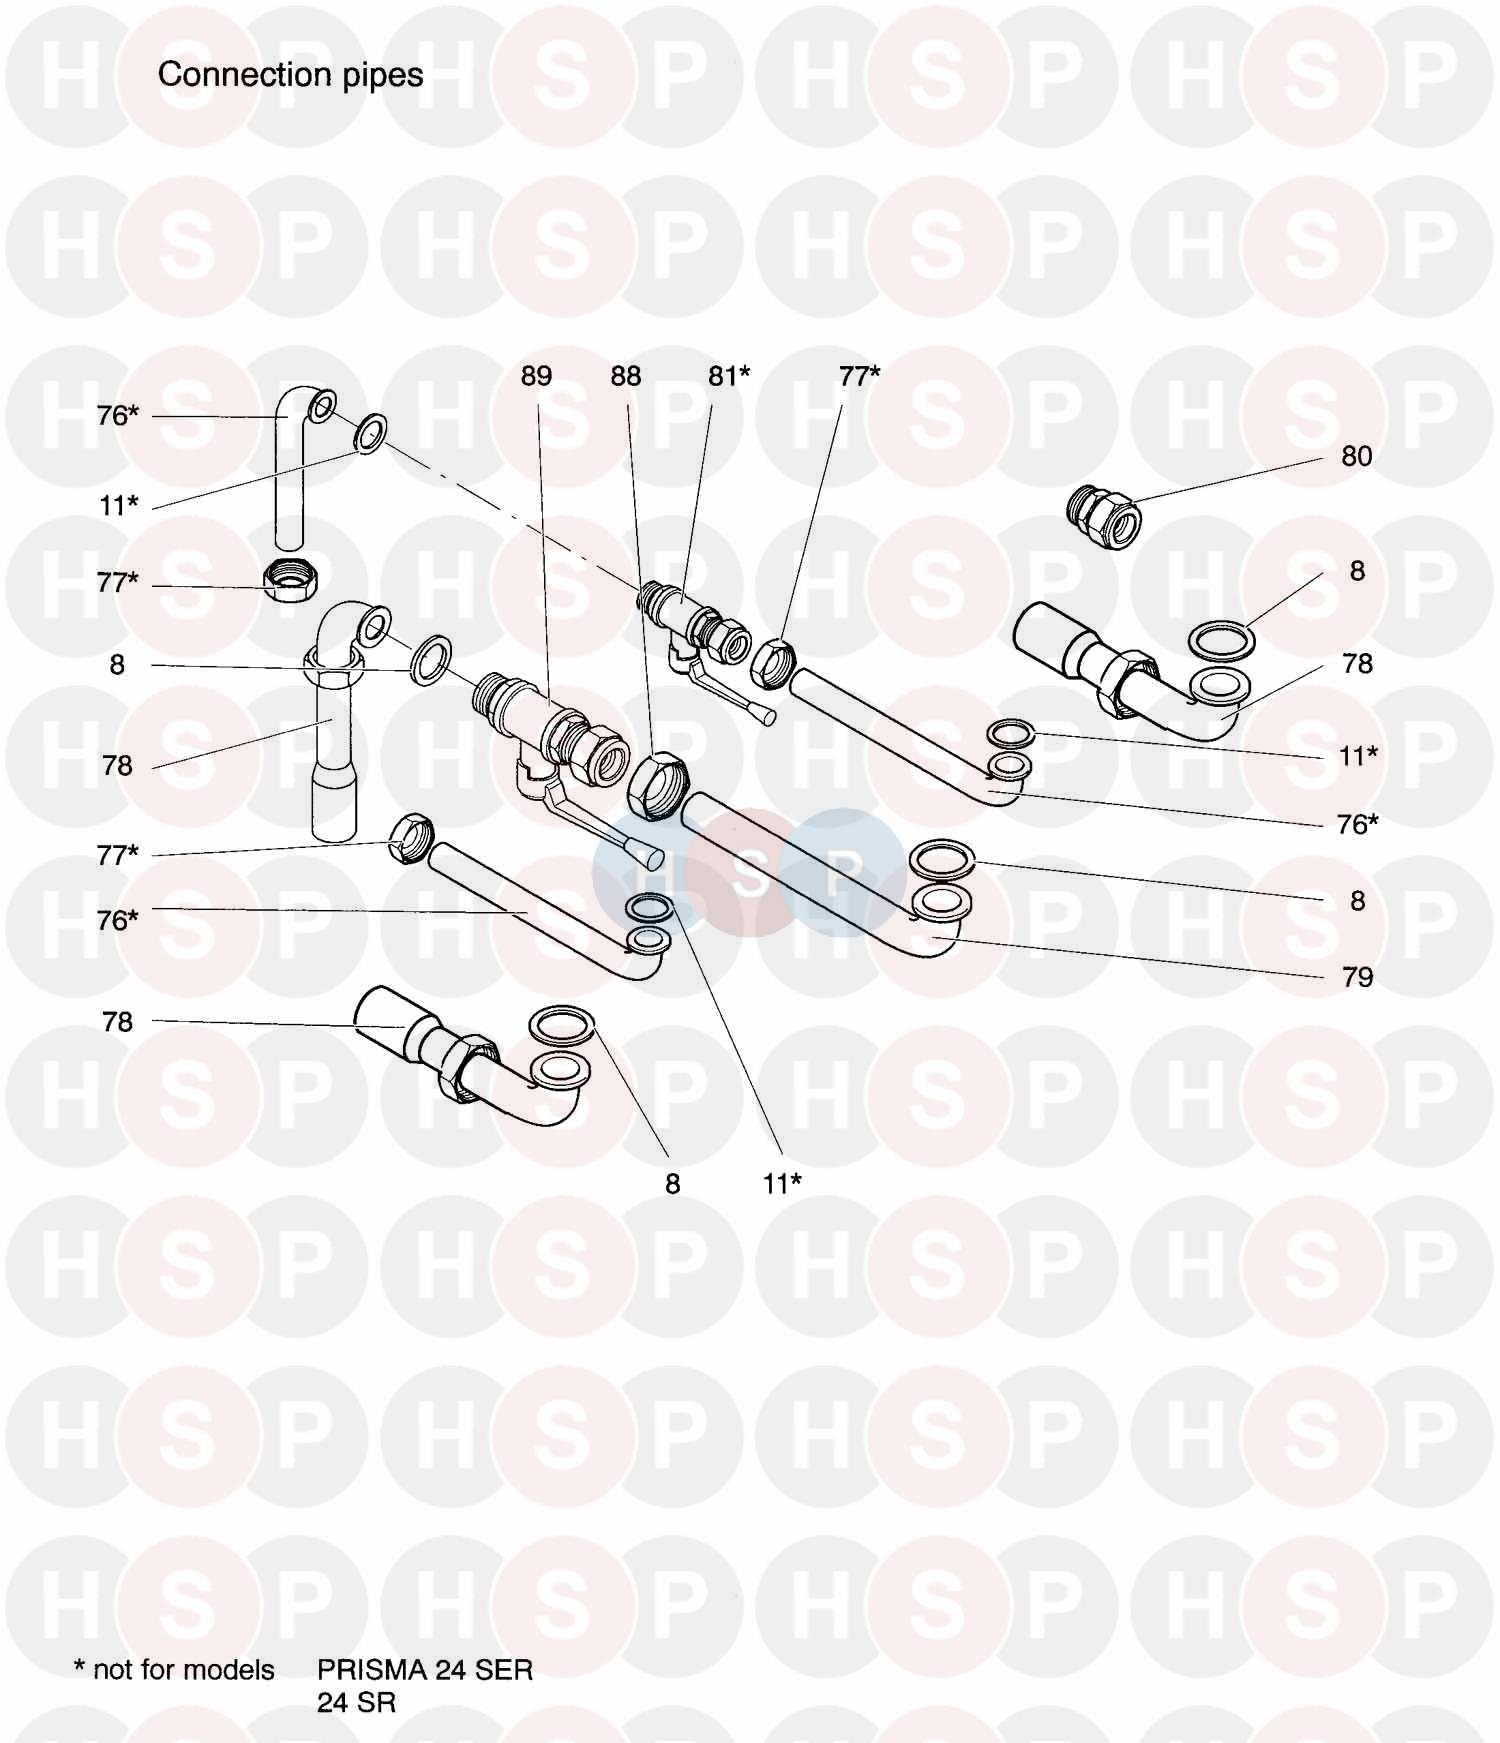 biasi prisma 28s  200  connection pipes  diagram